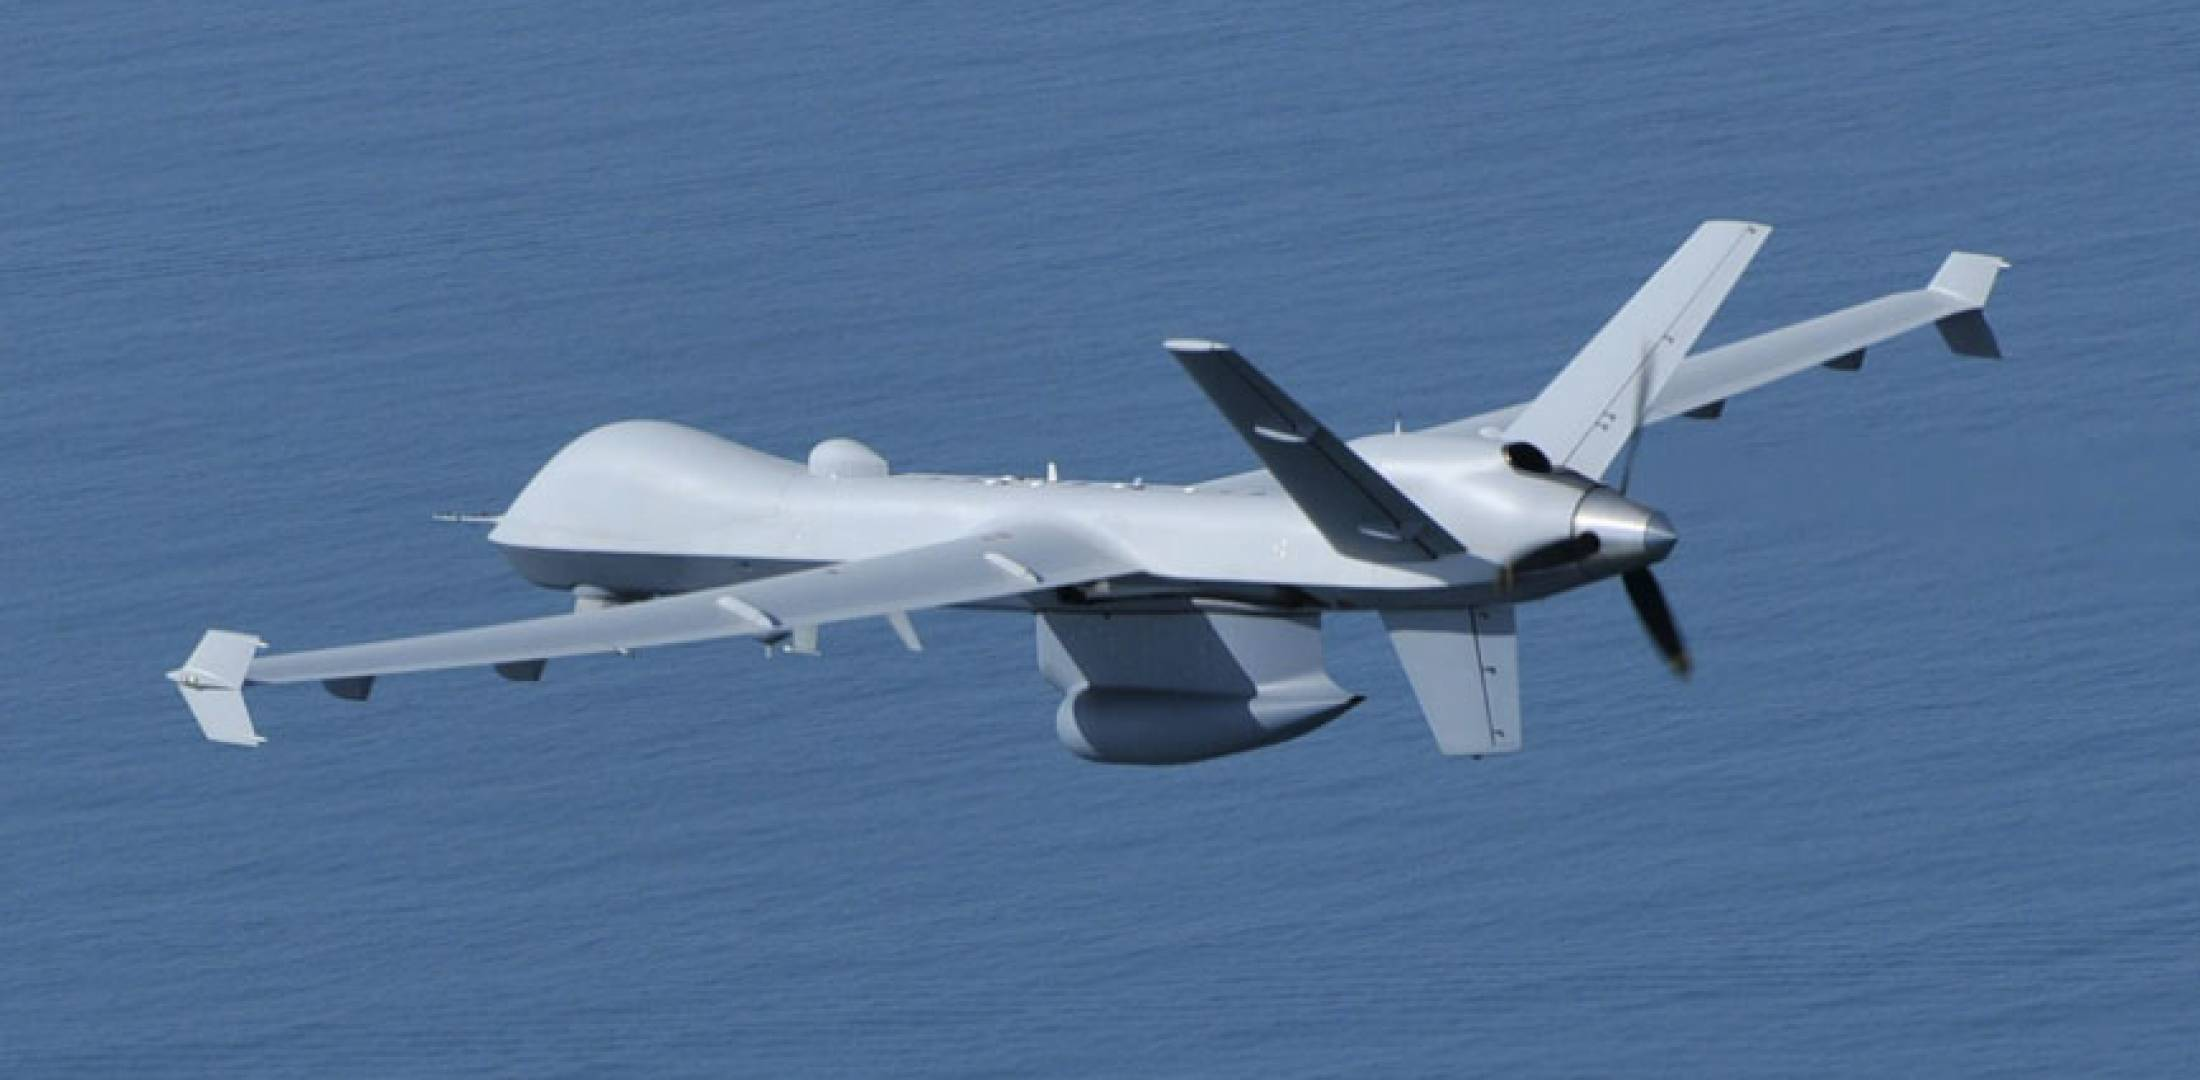 Predator B UAS in flight